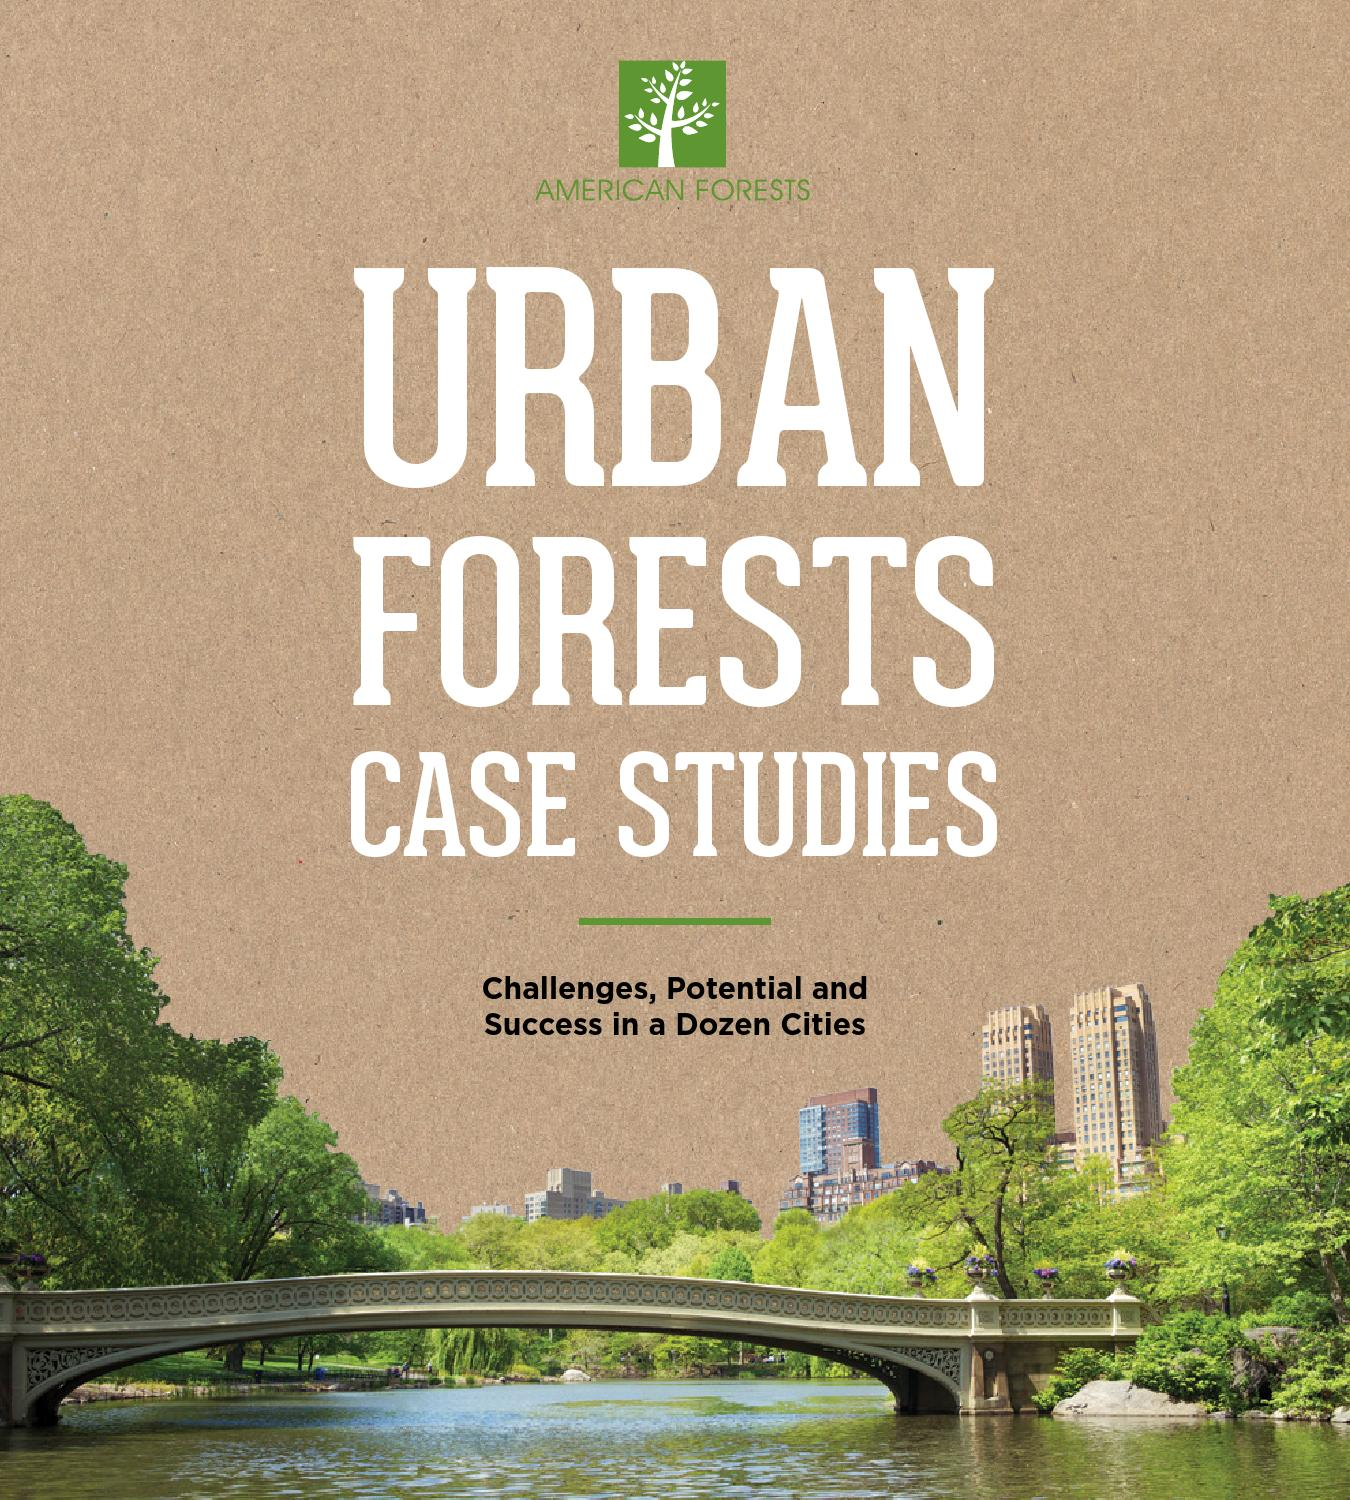 3099d0f4e37 Urban Forests Case Studies by American Forests - issuu